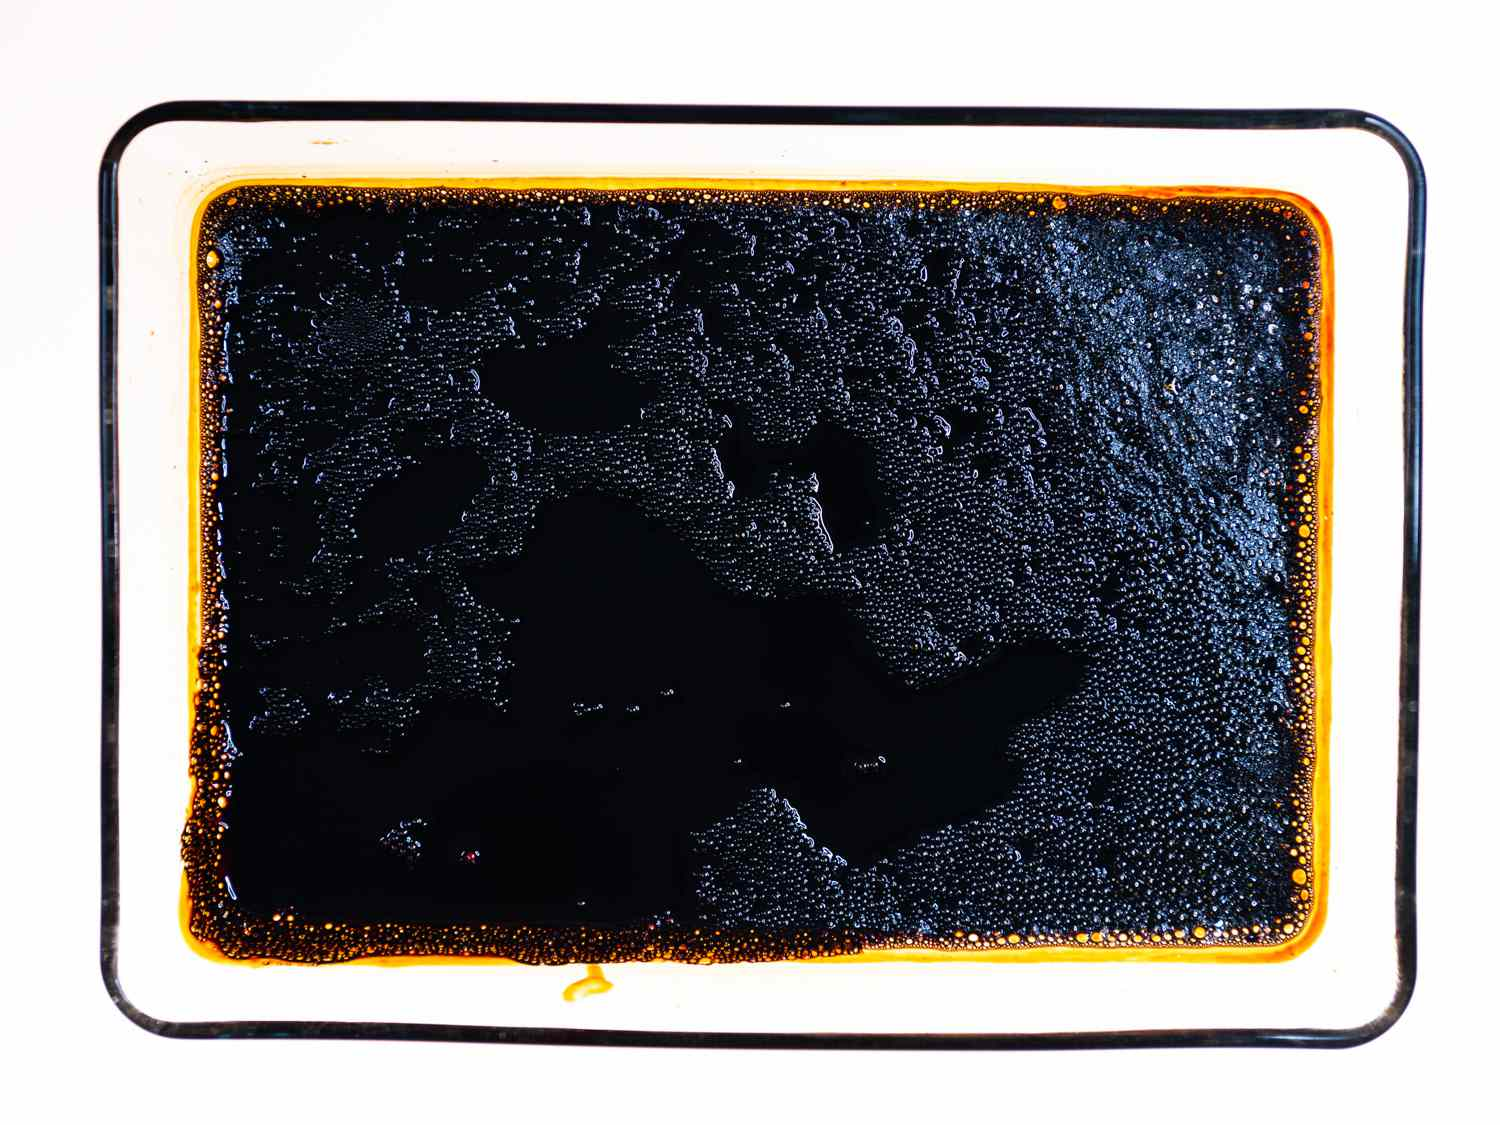 Pomegranate molasses cooked in an oven